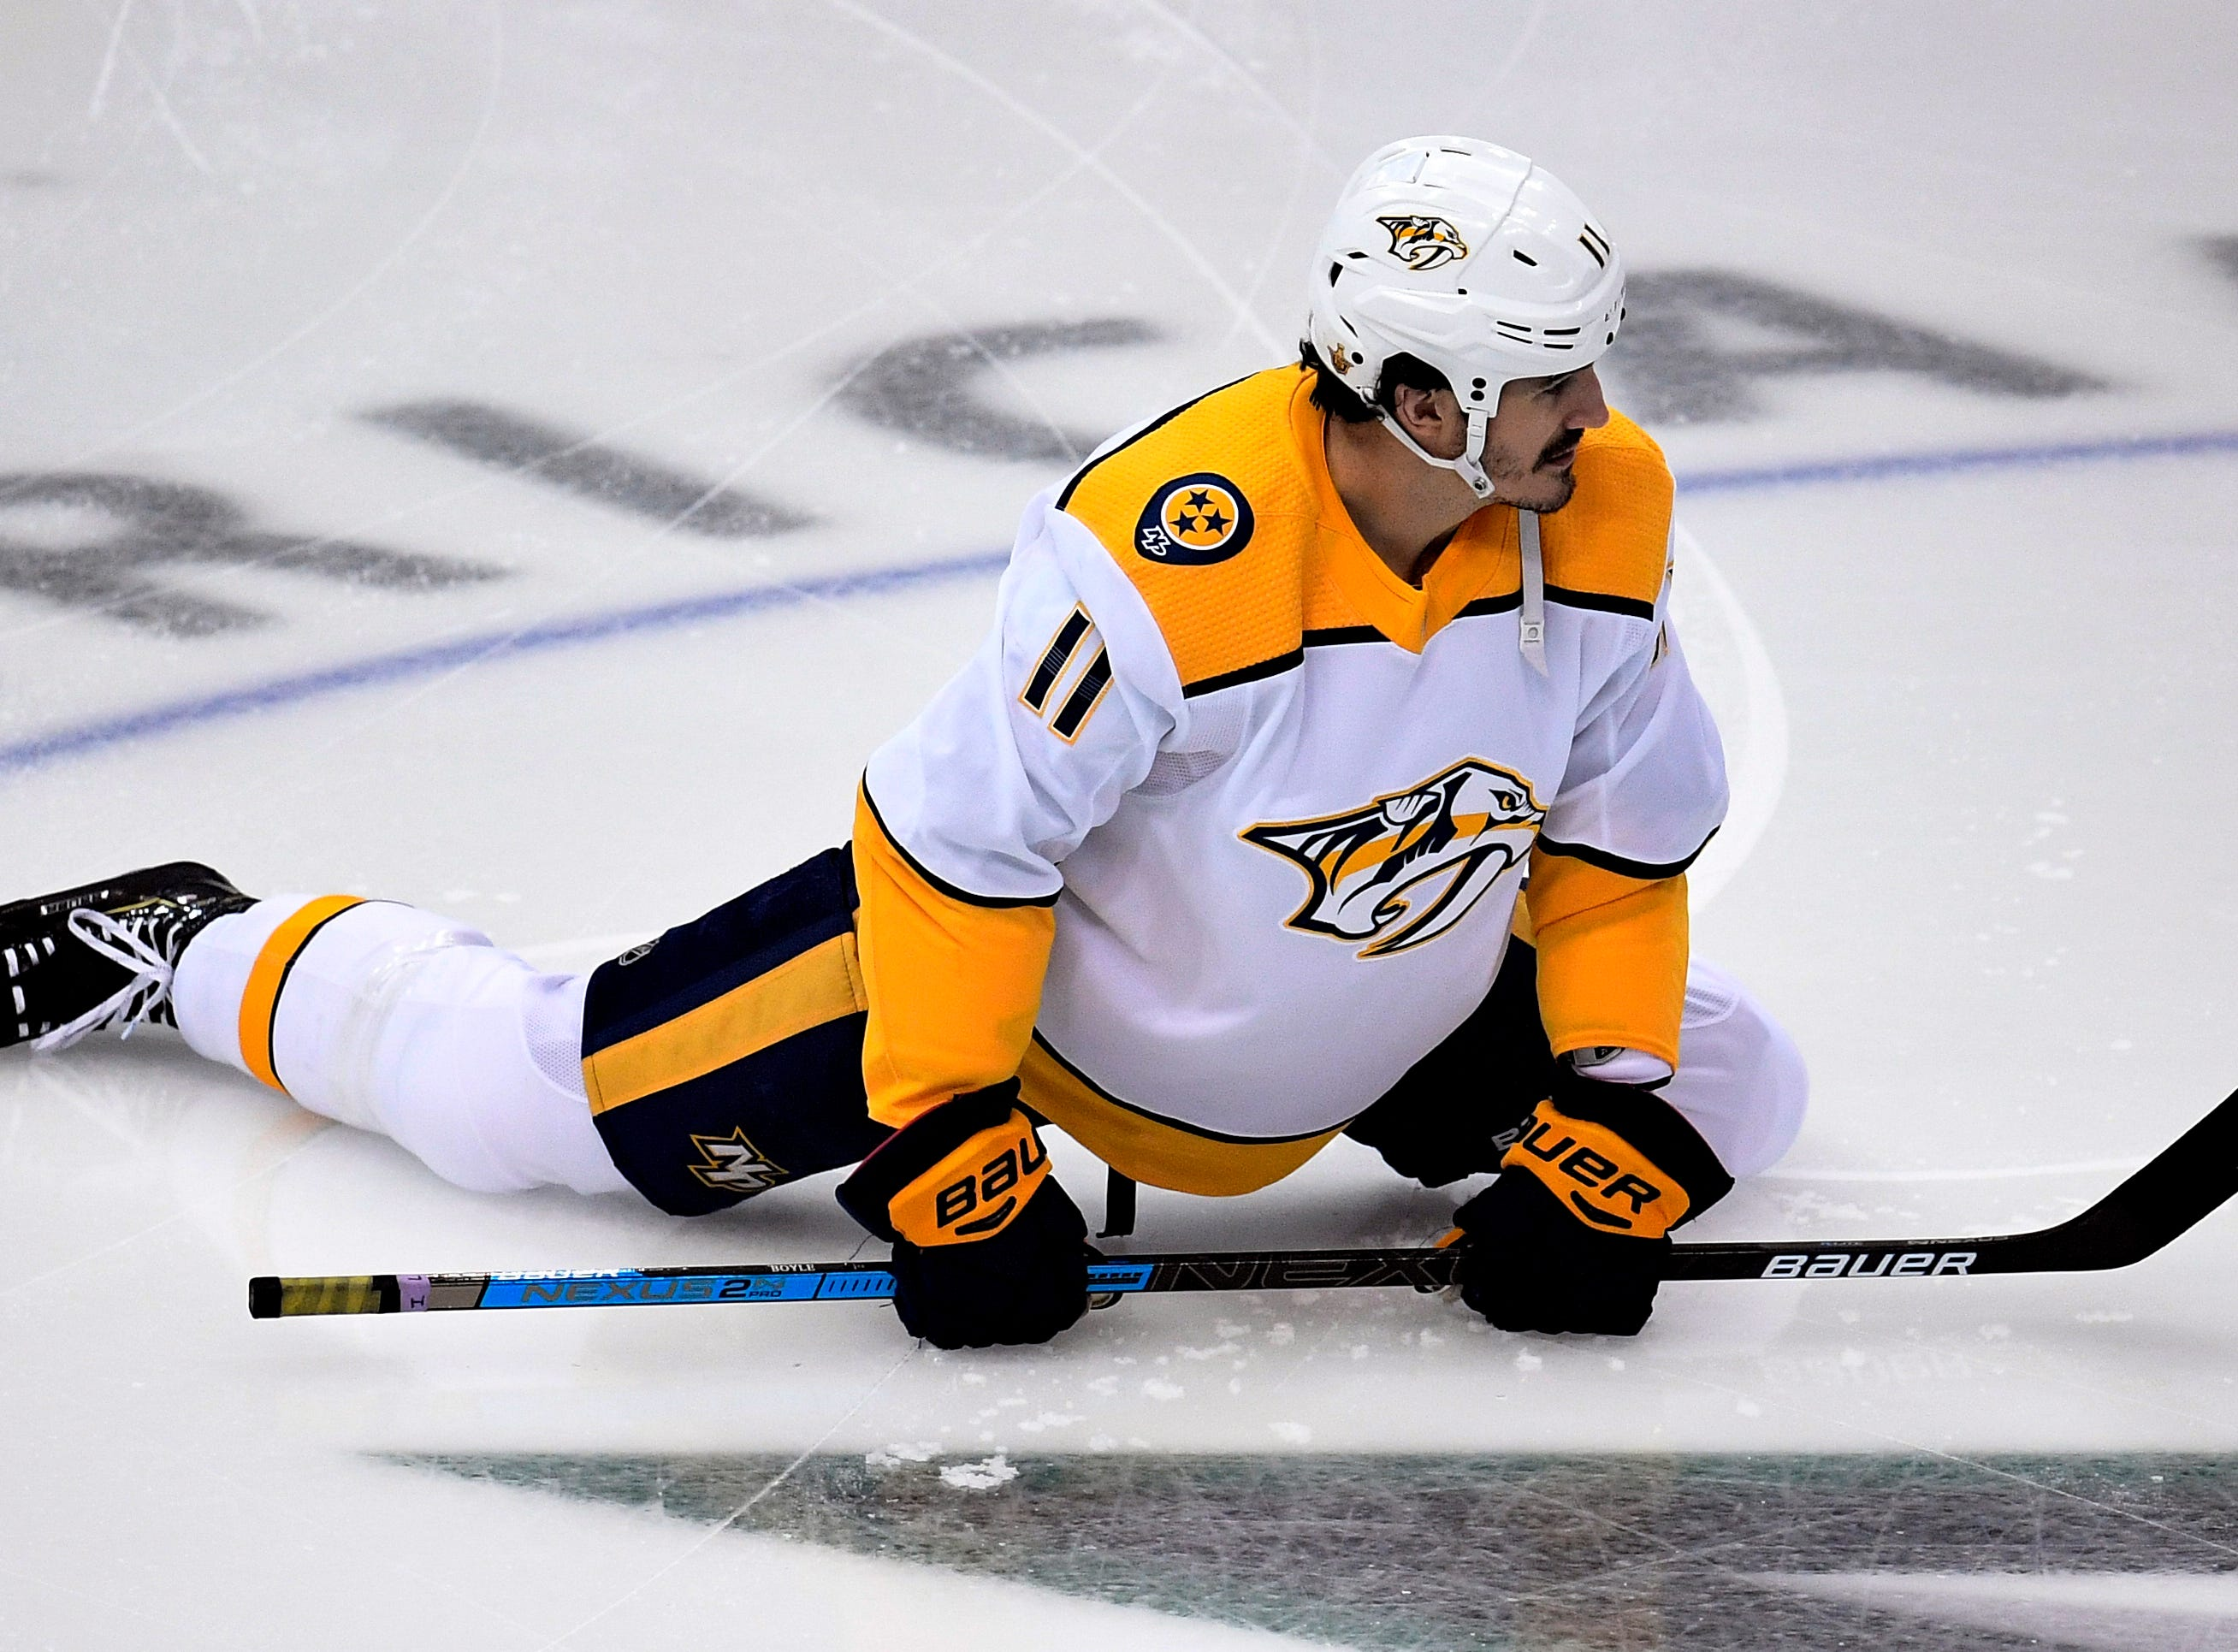 Nashville Predators center Brian Boyle (11) stretches during warmups before the divisional semifinal game against the Dallas Stars at the American Airlines Center in Dallas, Texas, Monday, April 22, 2019.